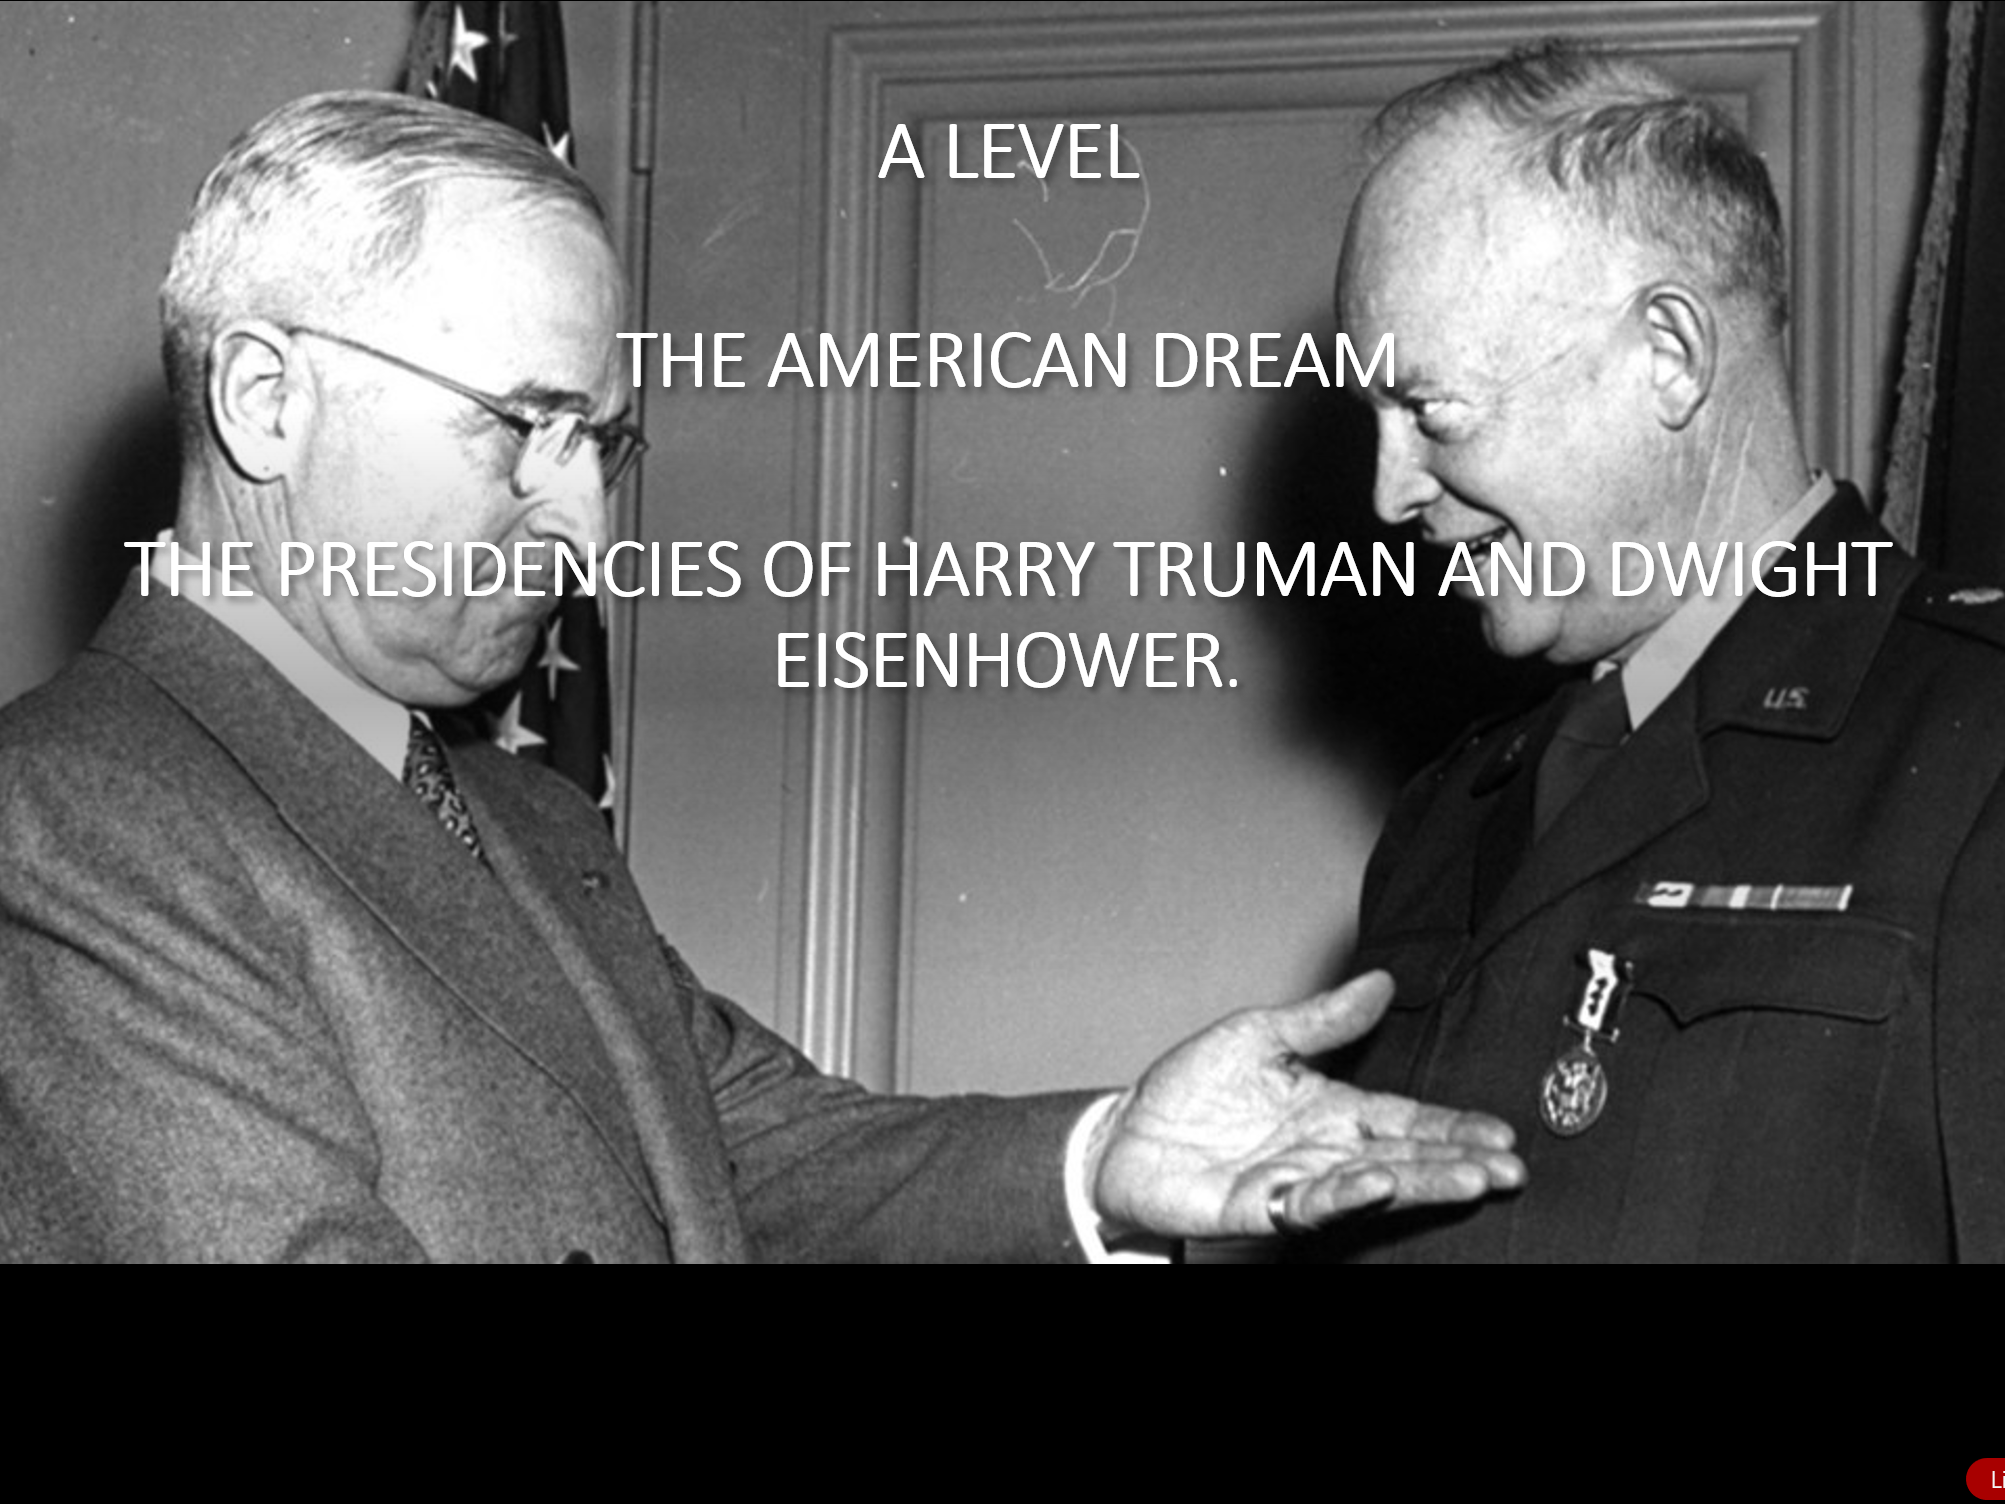 A LEVEL - THE PRESIDENCIES OF HARRY TRUMAN AND DWIGHT EISENHOWER.